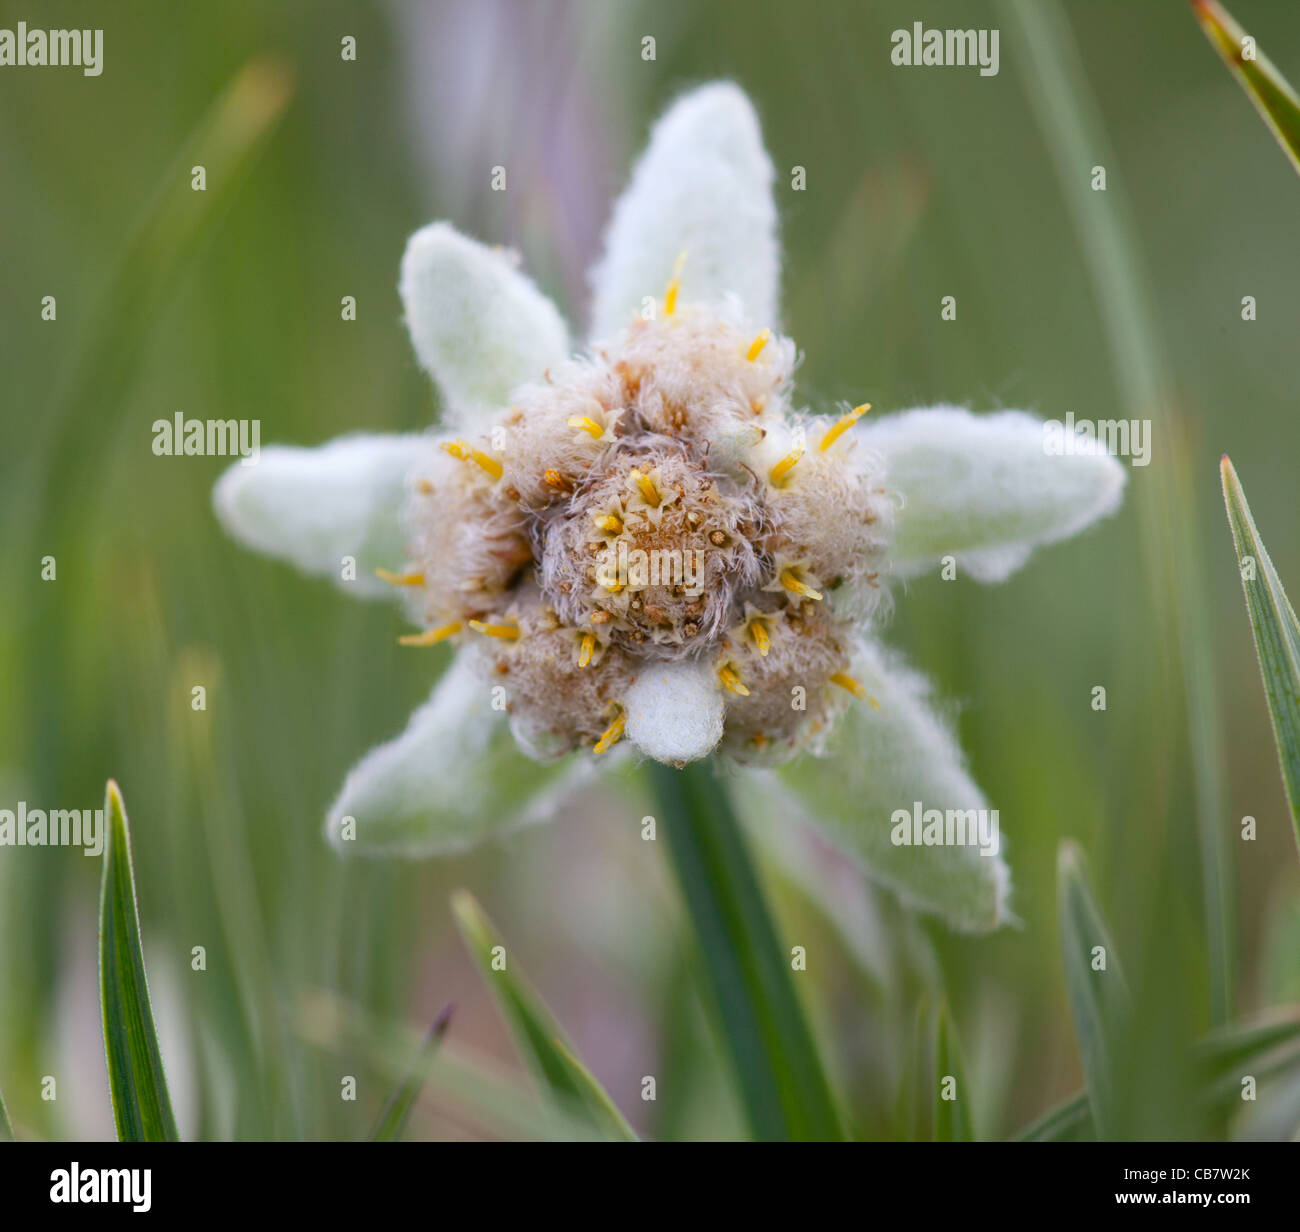 Edelweiss Stock Photos & Edelweiss Stock Images